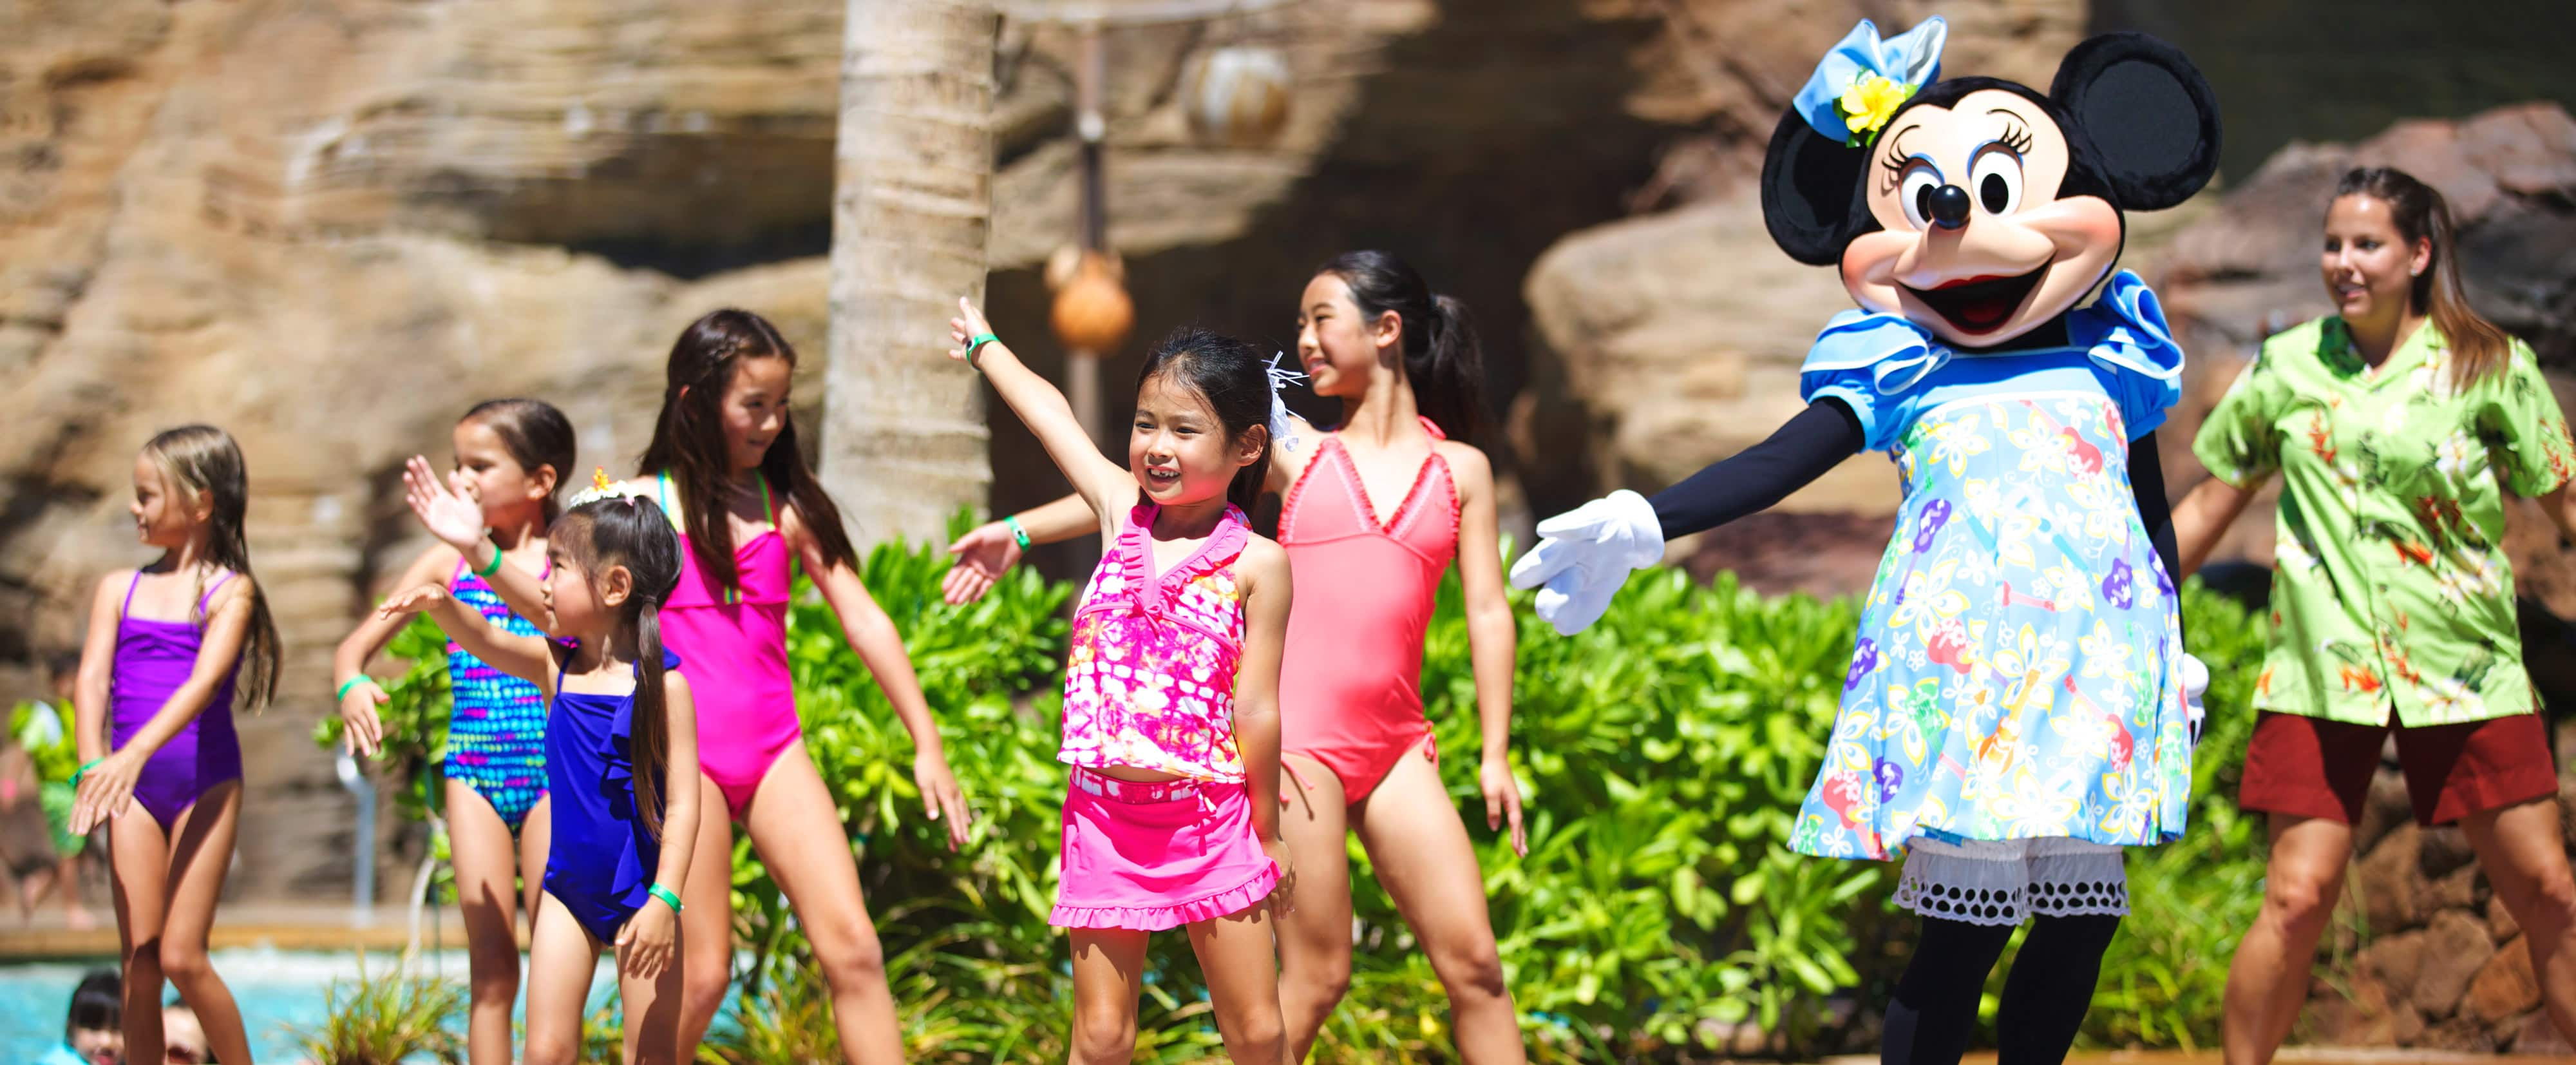 Minnie and a group of young girls strike a pose while dancing poolside